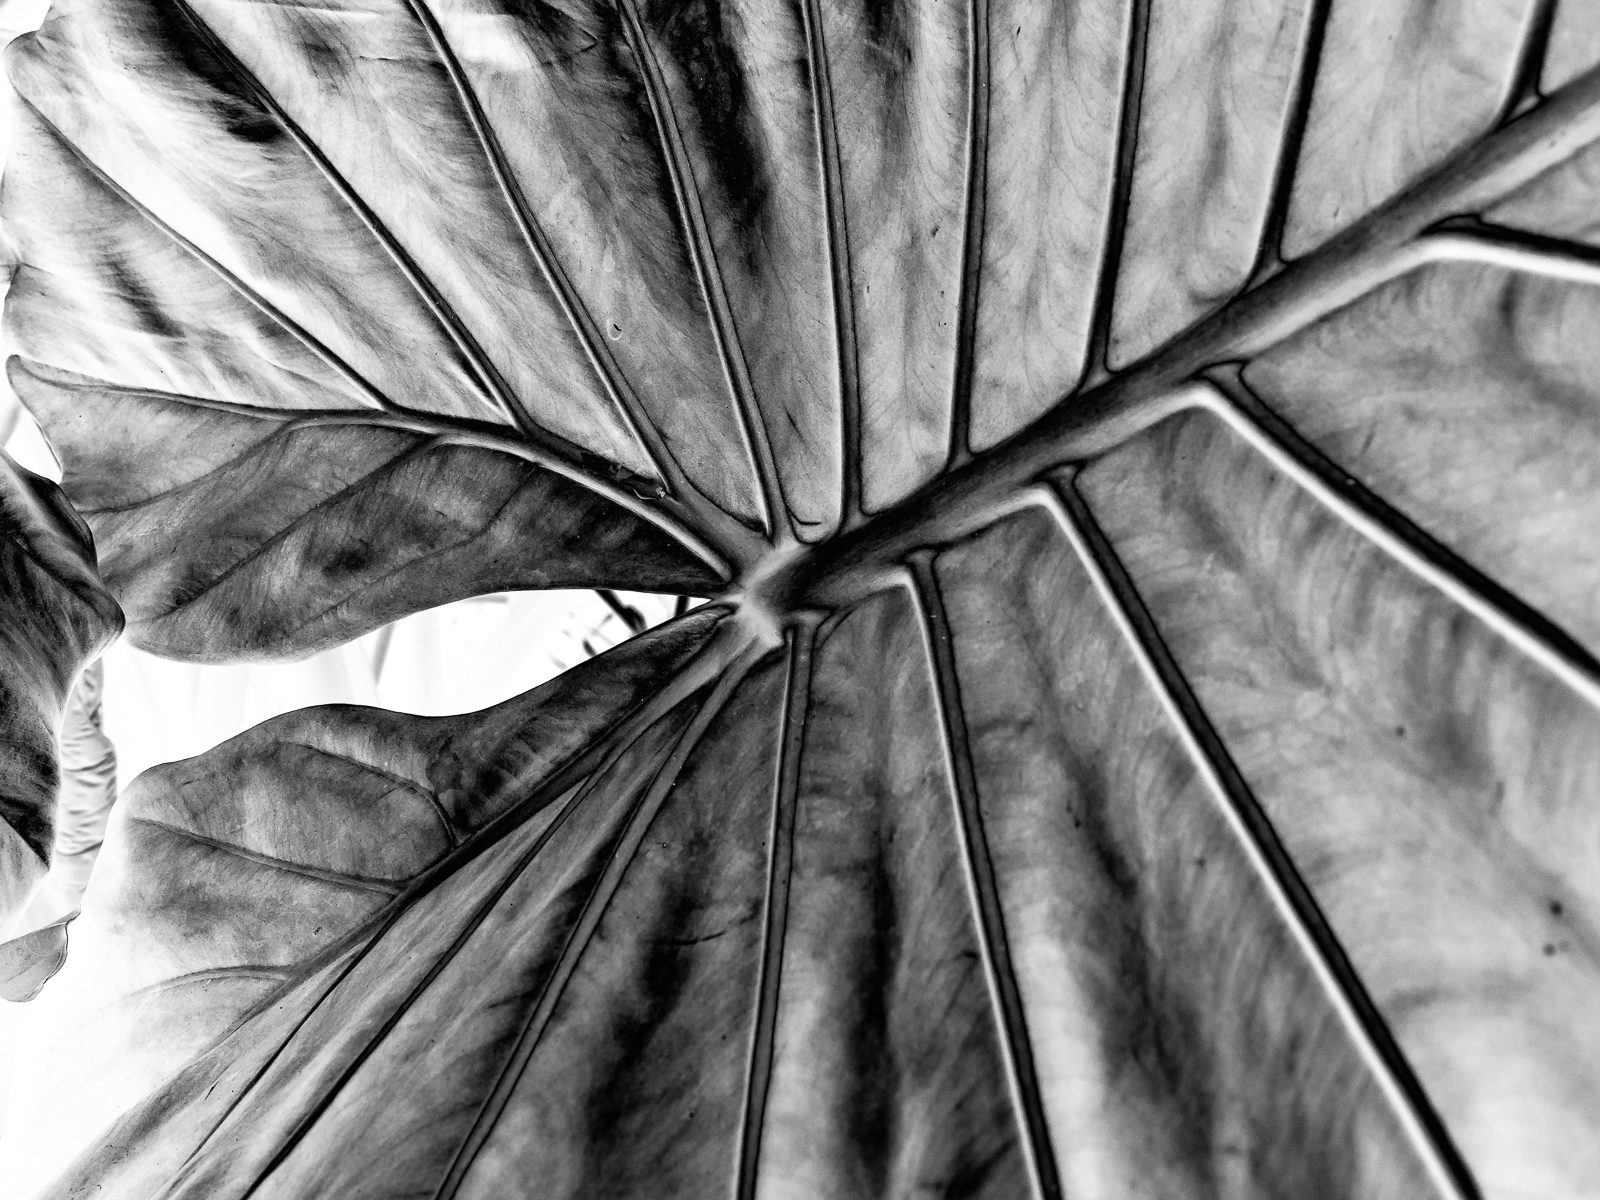 longwood-leaves-2